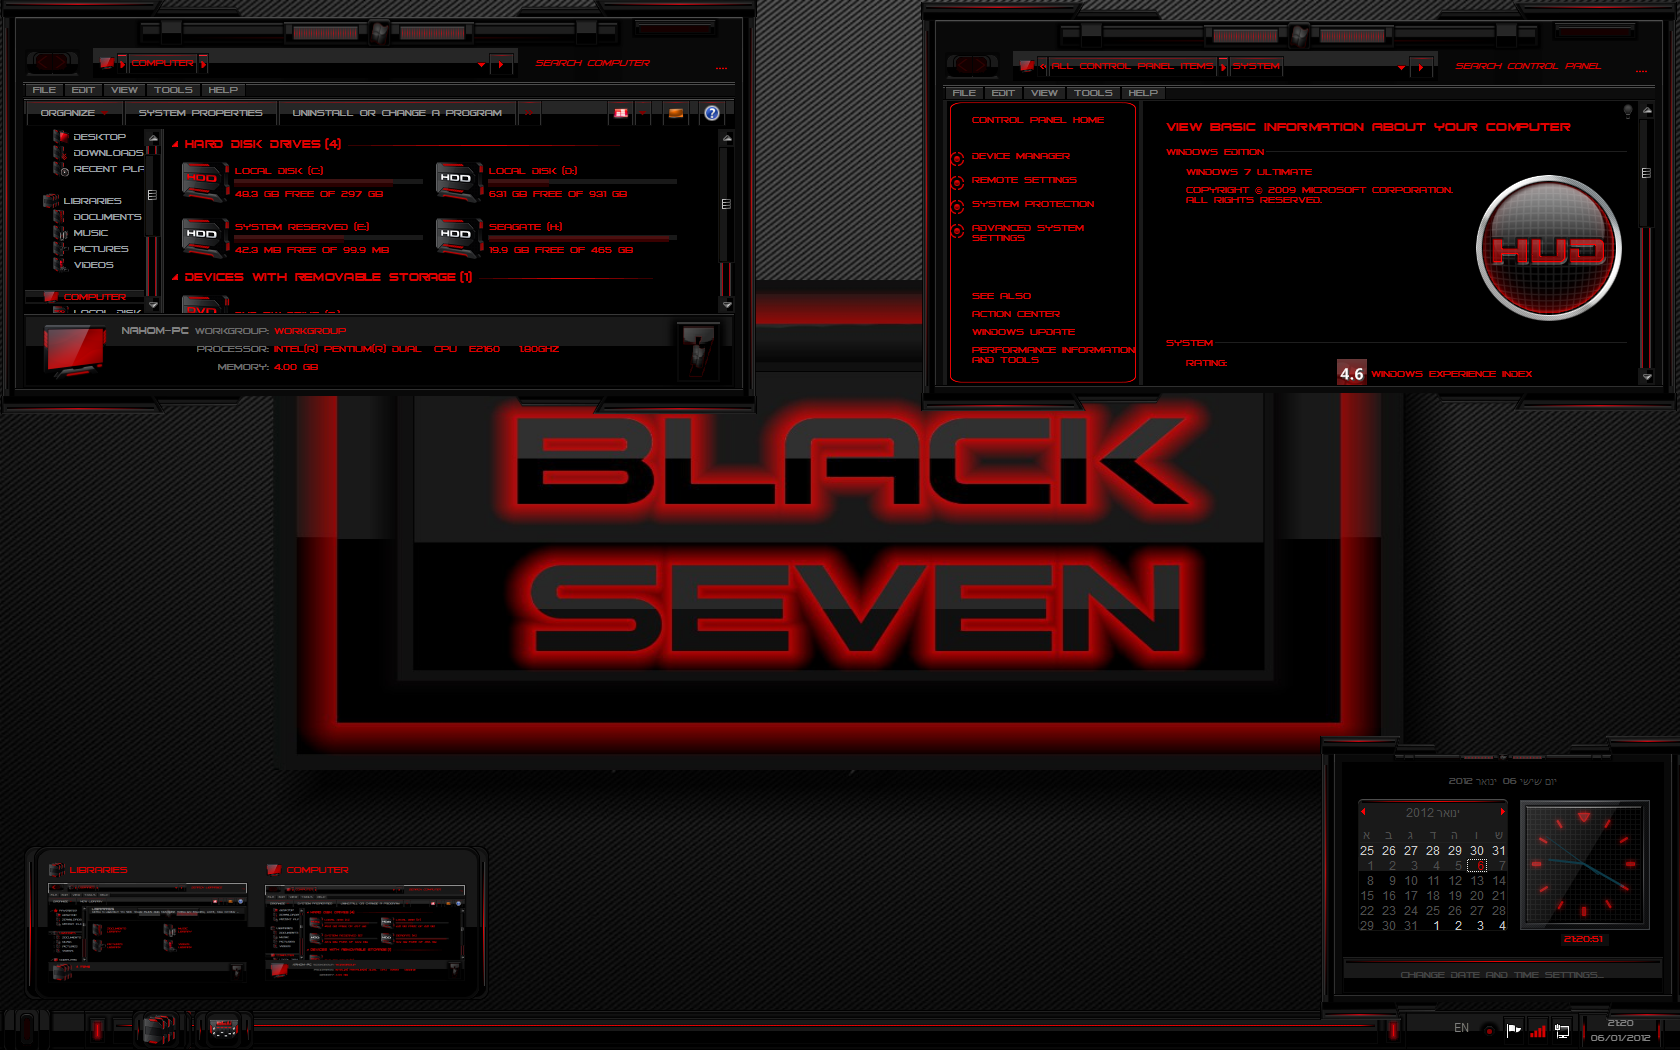 Windows black seven edition 2013 us x64 final rar [cr. A. Ck+].